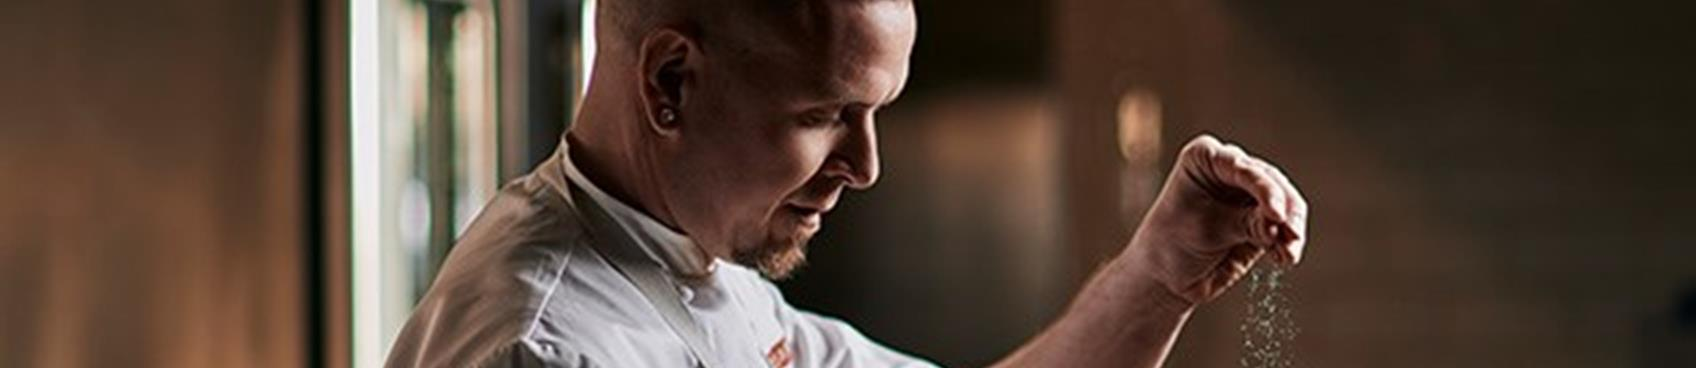 Purchase Tickets to Chef Demonstration at Louis M. Martini Winery on CellarPass